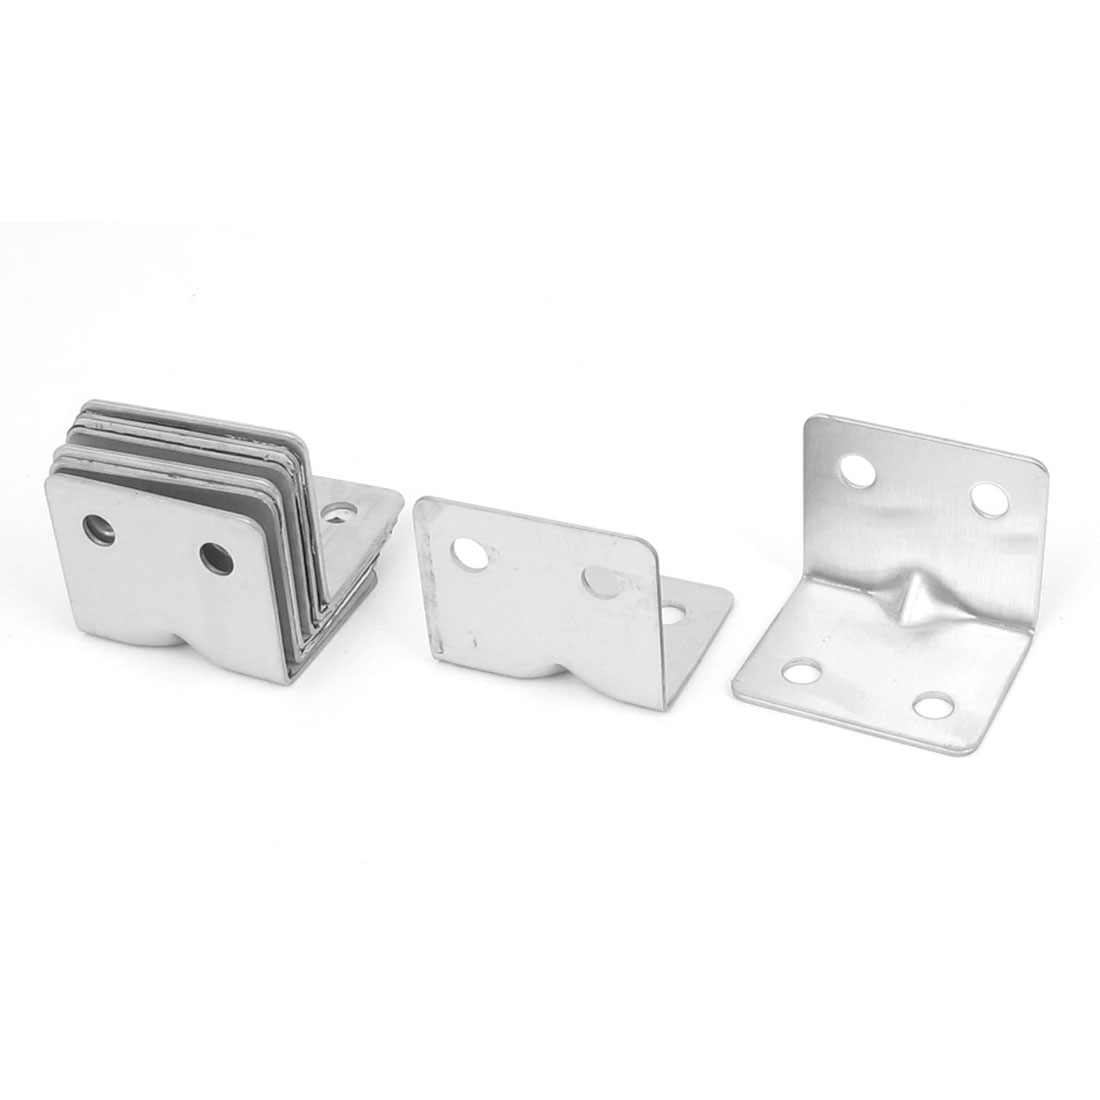 8pcs Stainless Steel Shelf Wall Corner Brace Right Angle Bracket 30mm x 30mm x 37mm